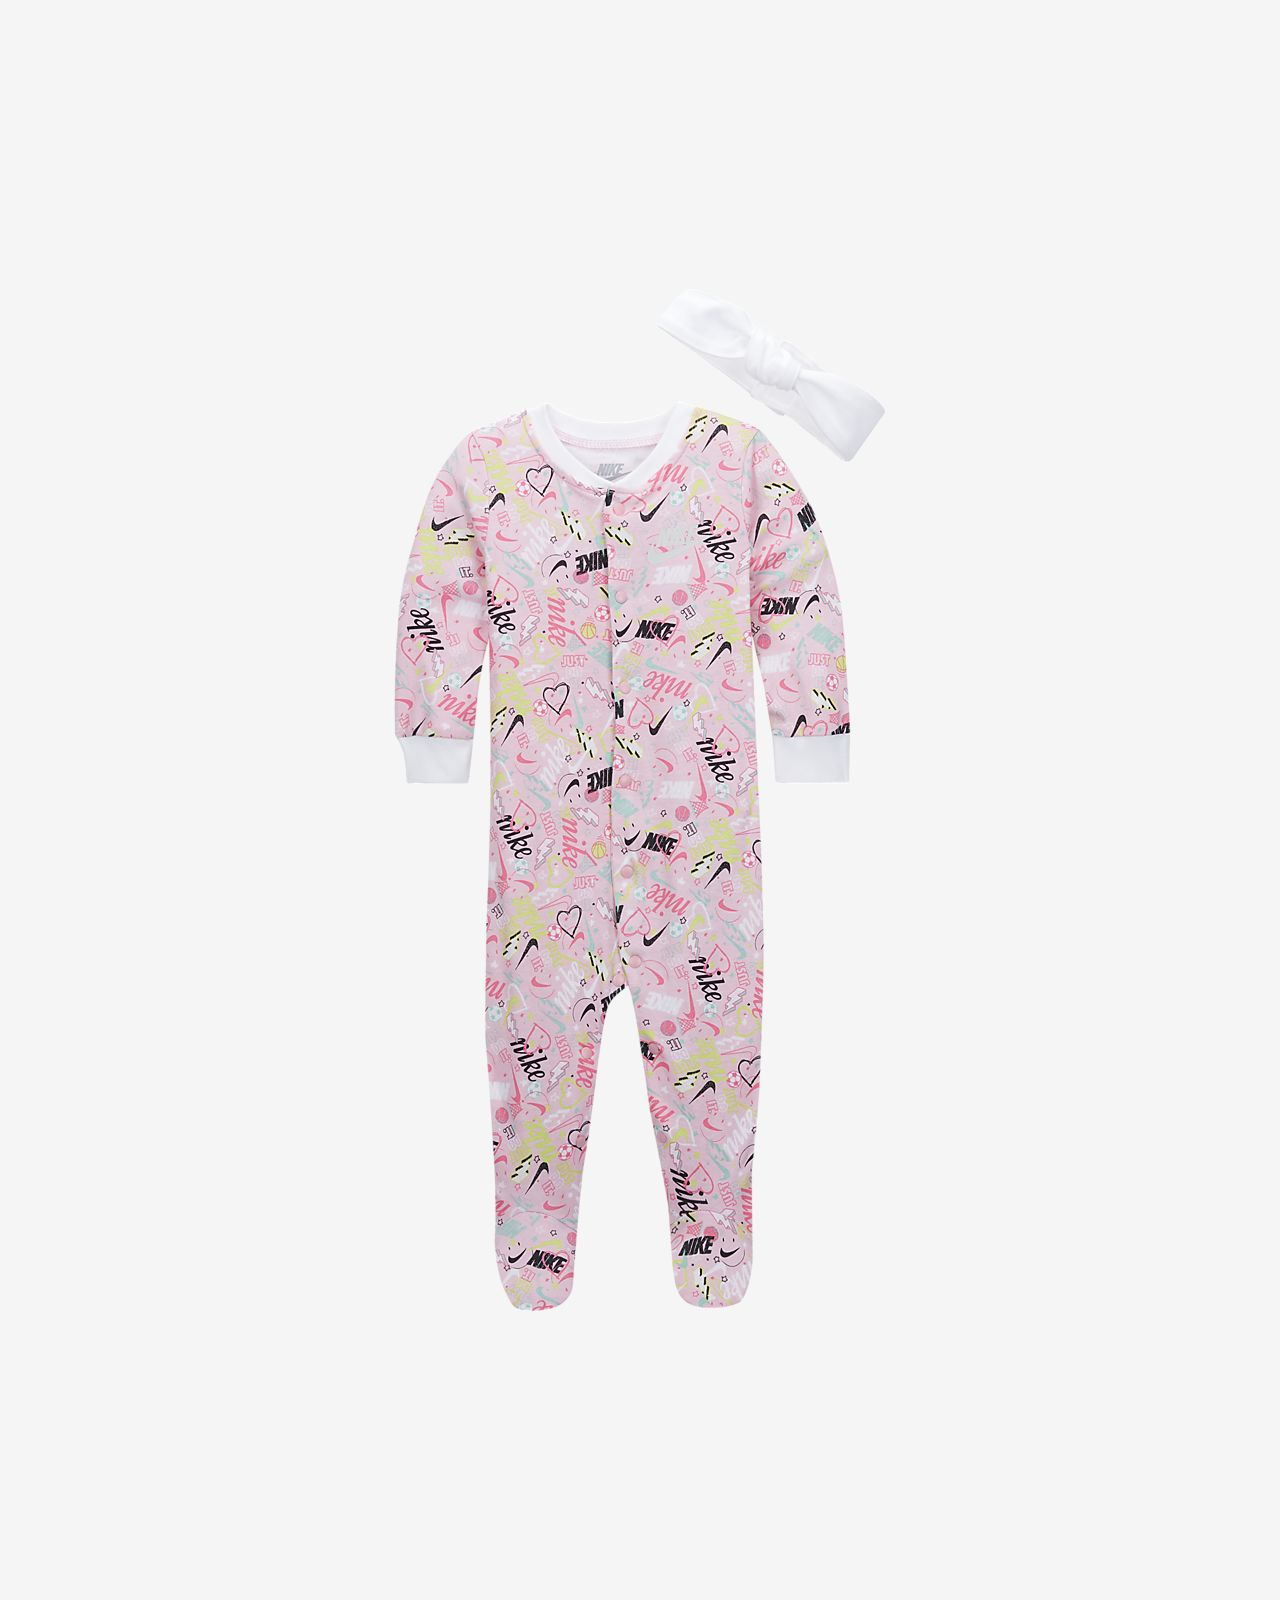 Nike Baby (0-9M) Coverall and Headband Set